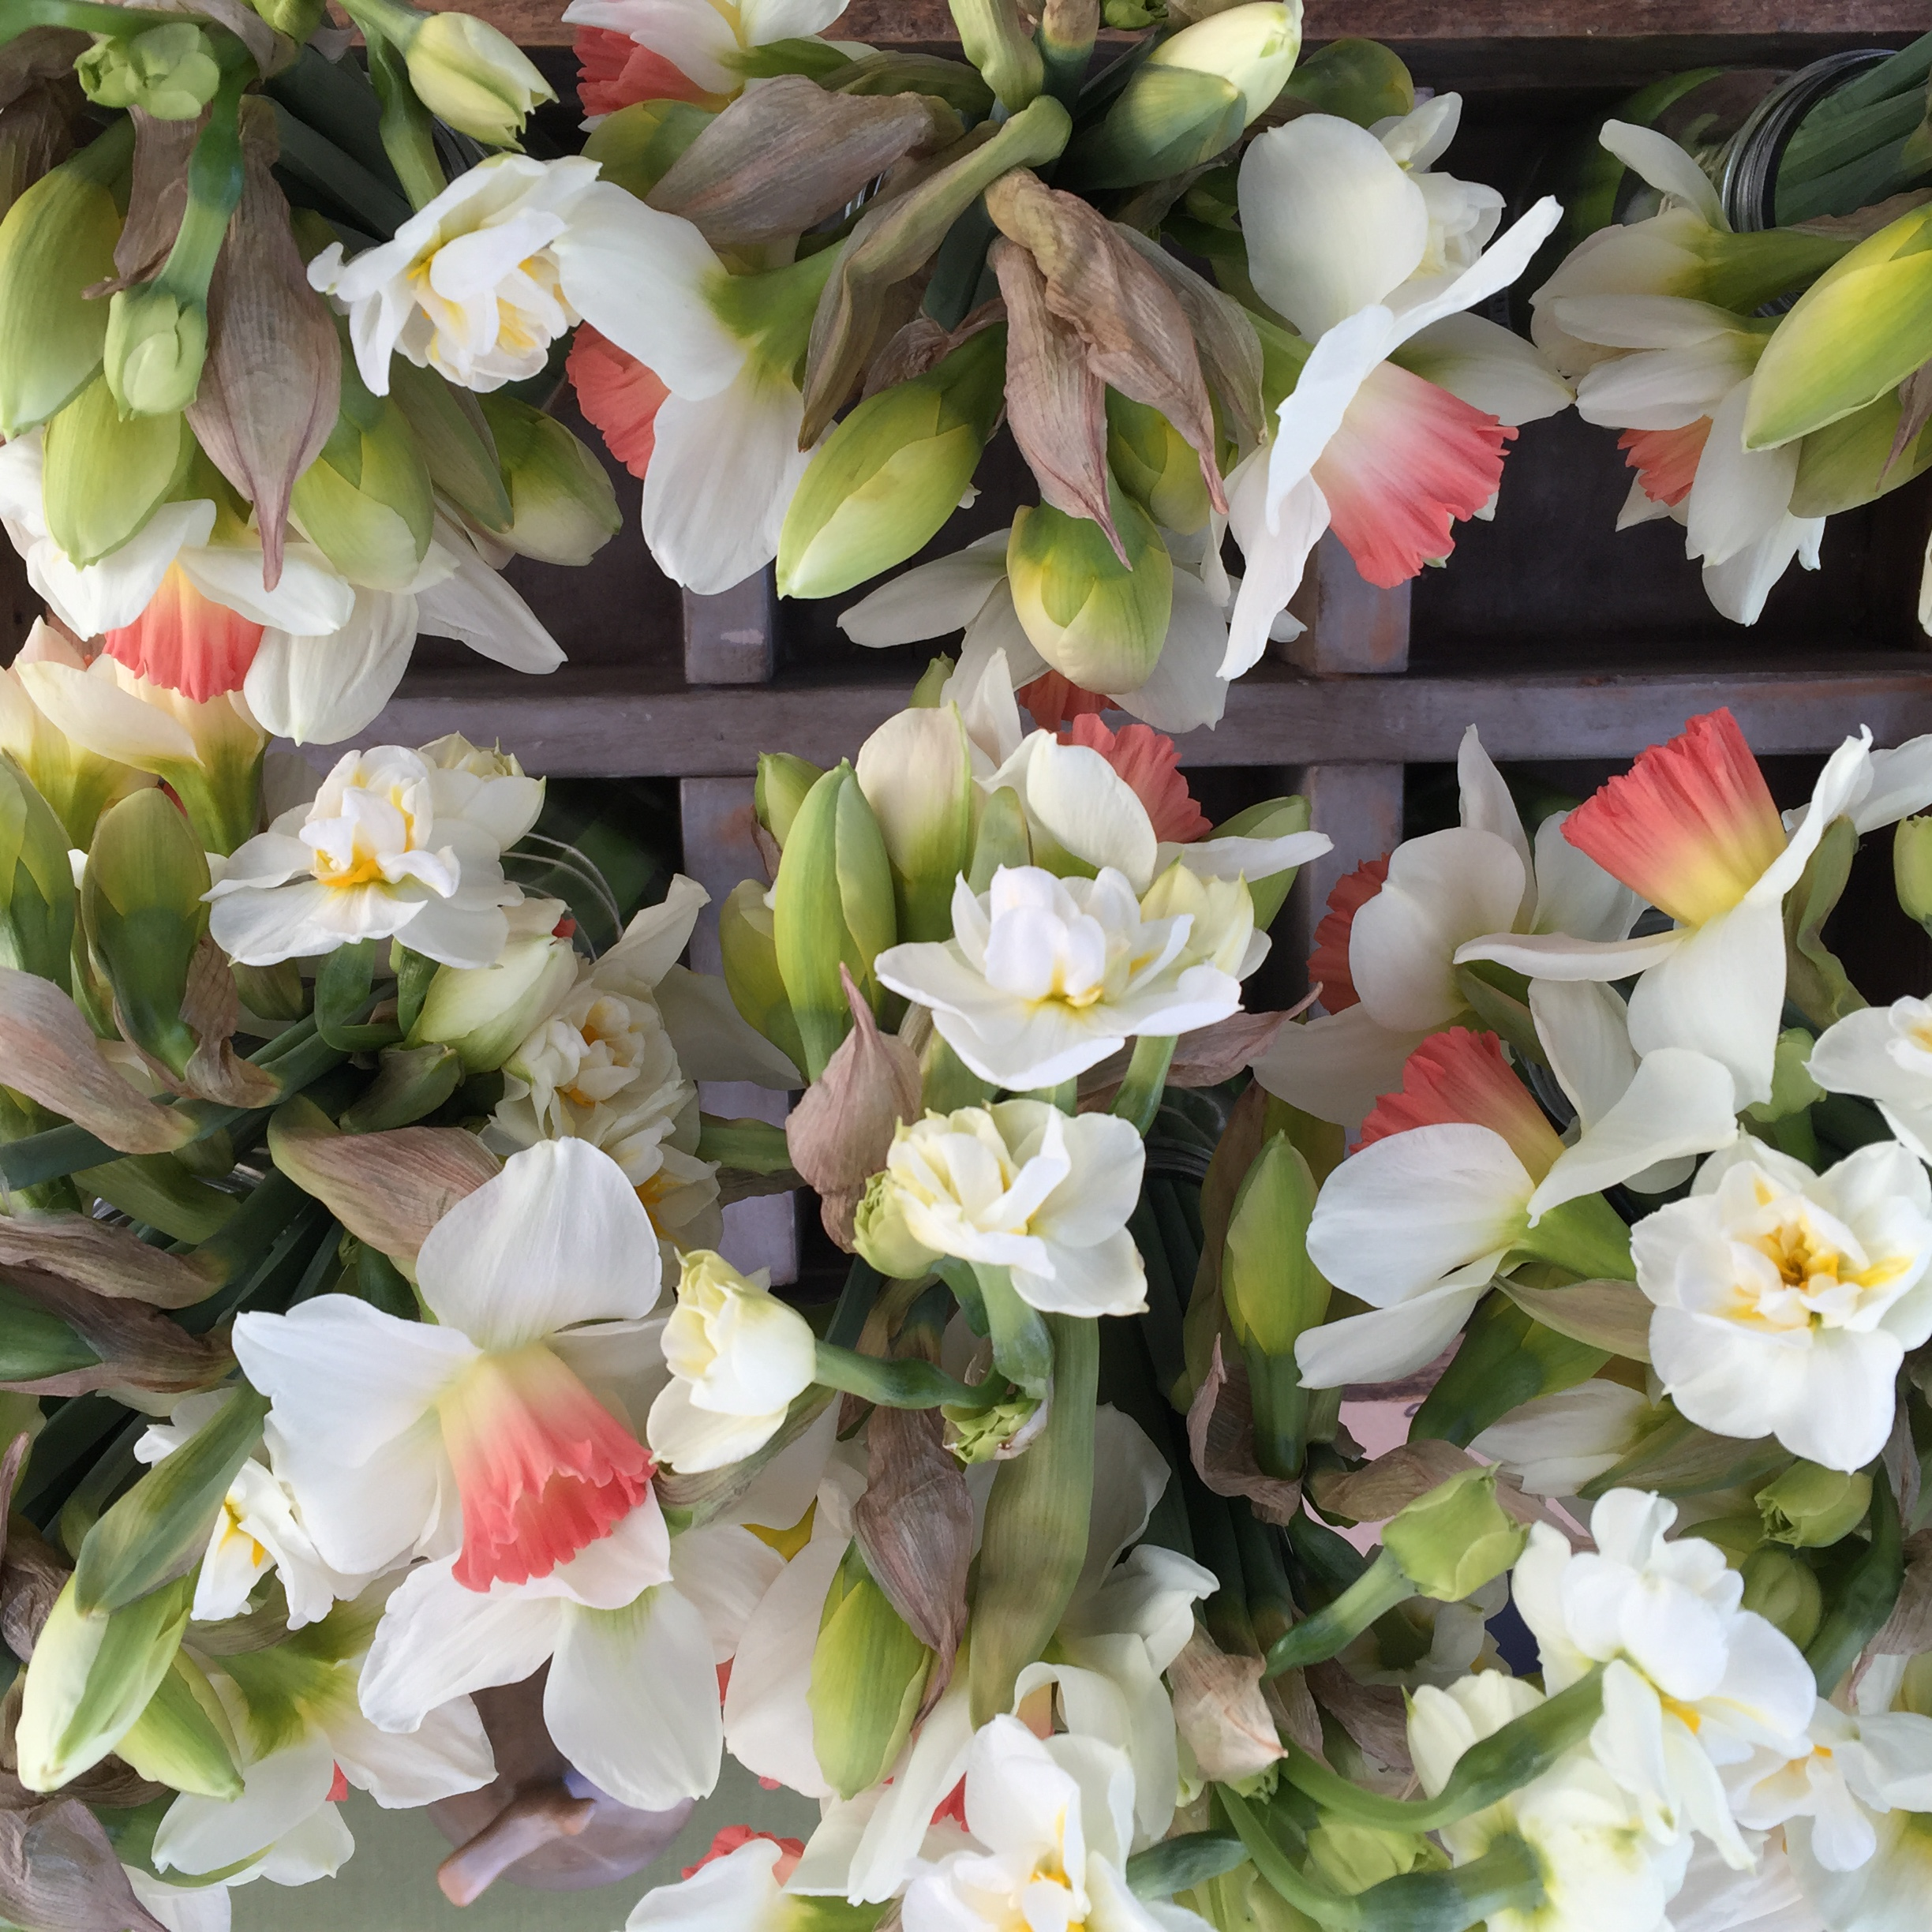 website_cutflowers_page_narcissus.jpeg